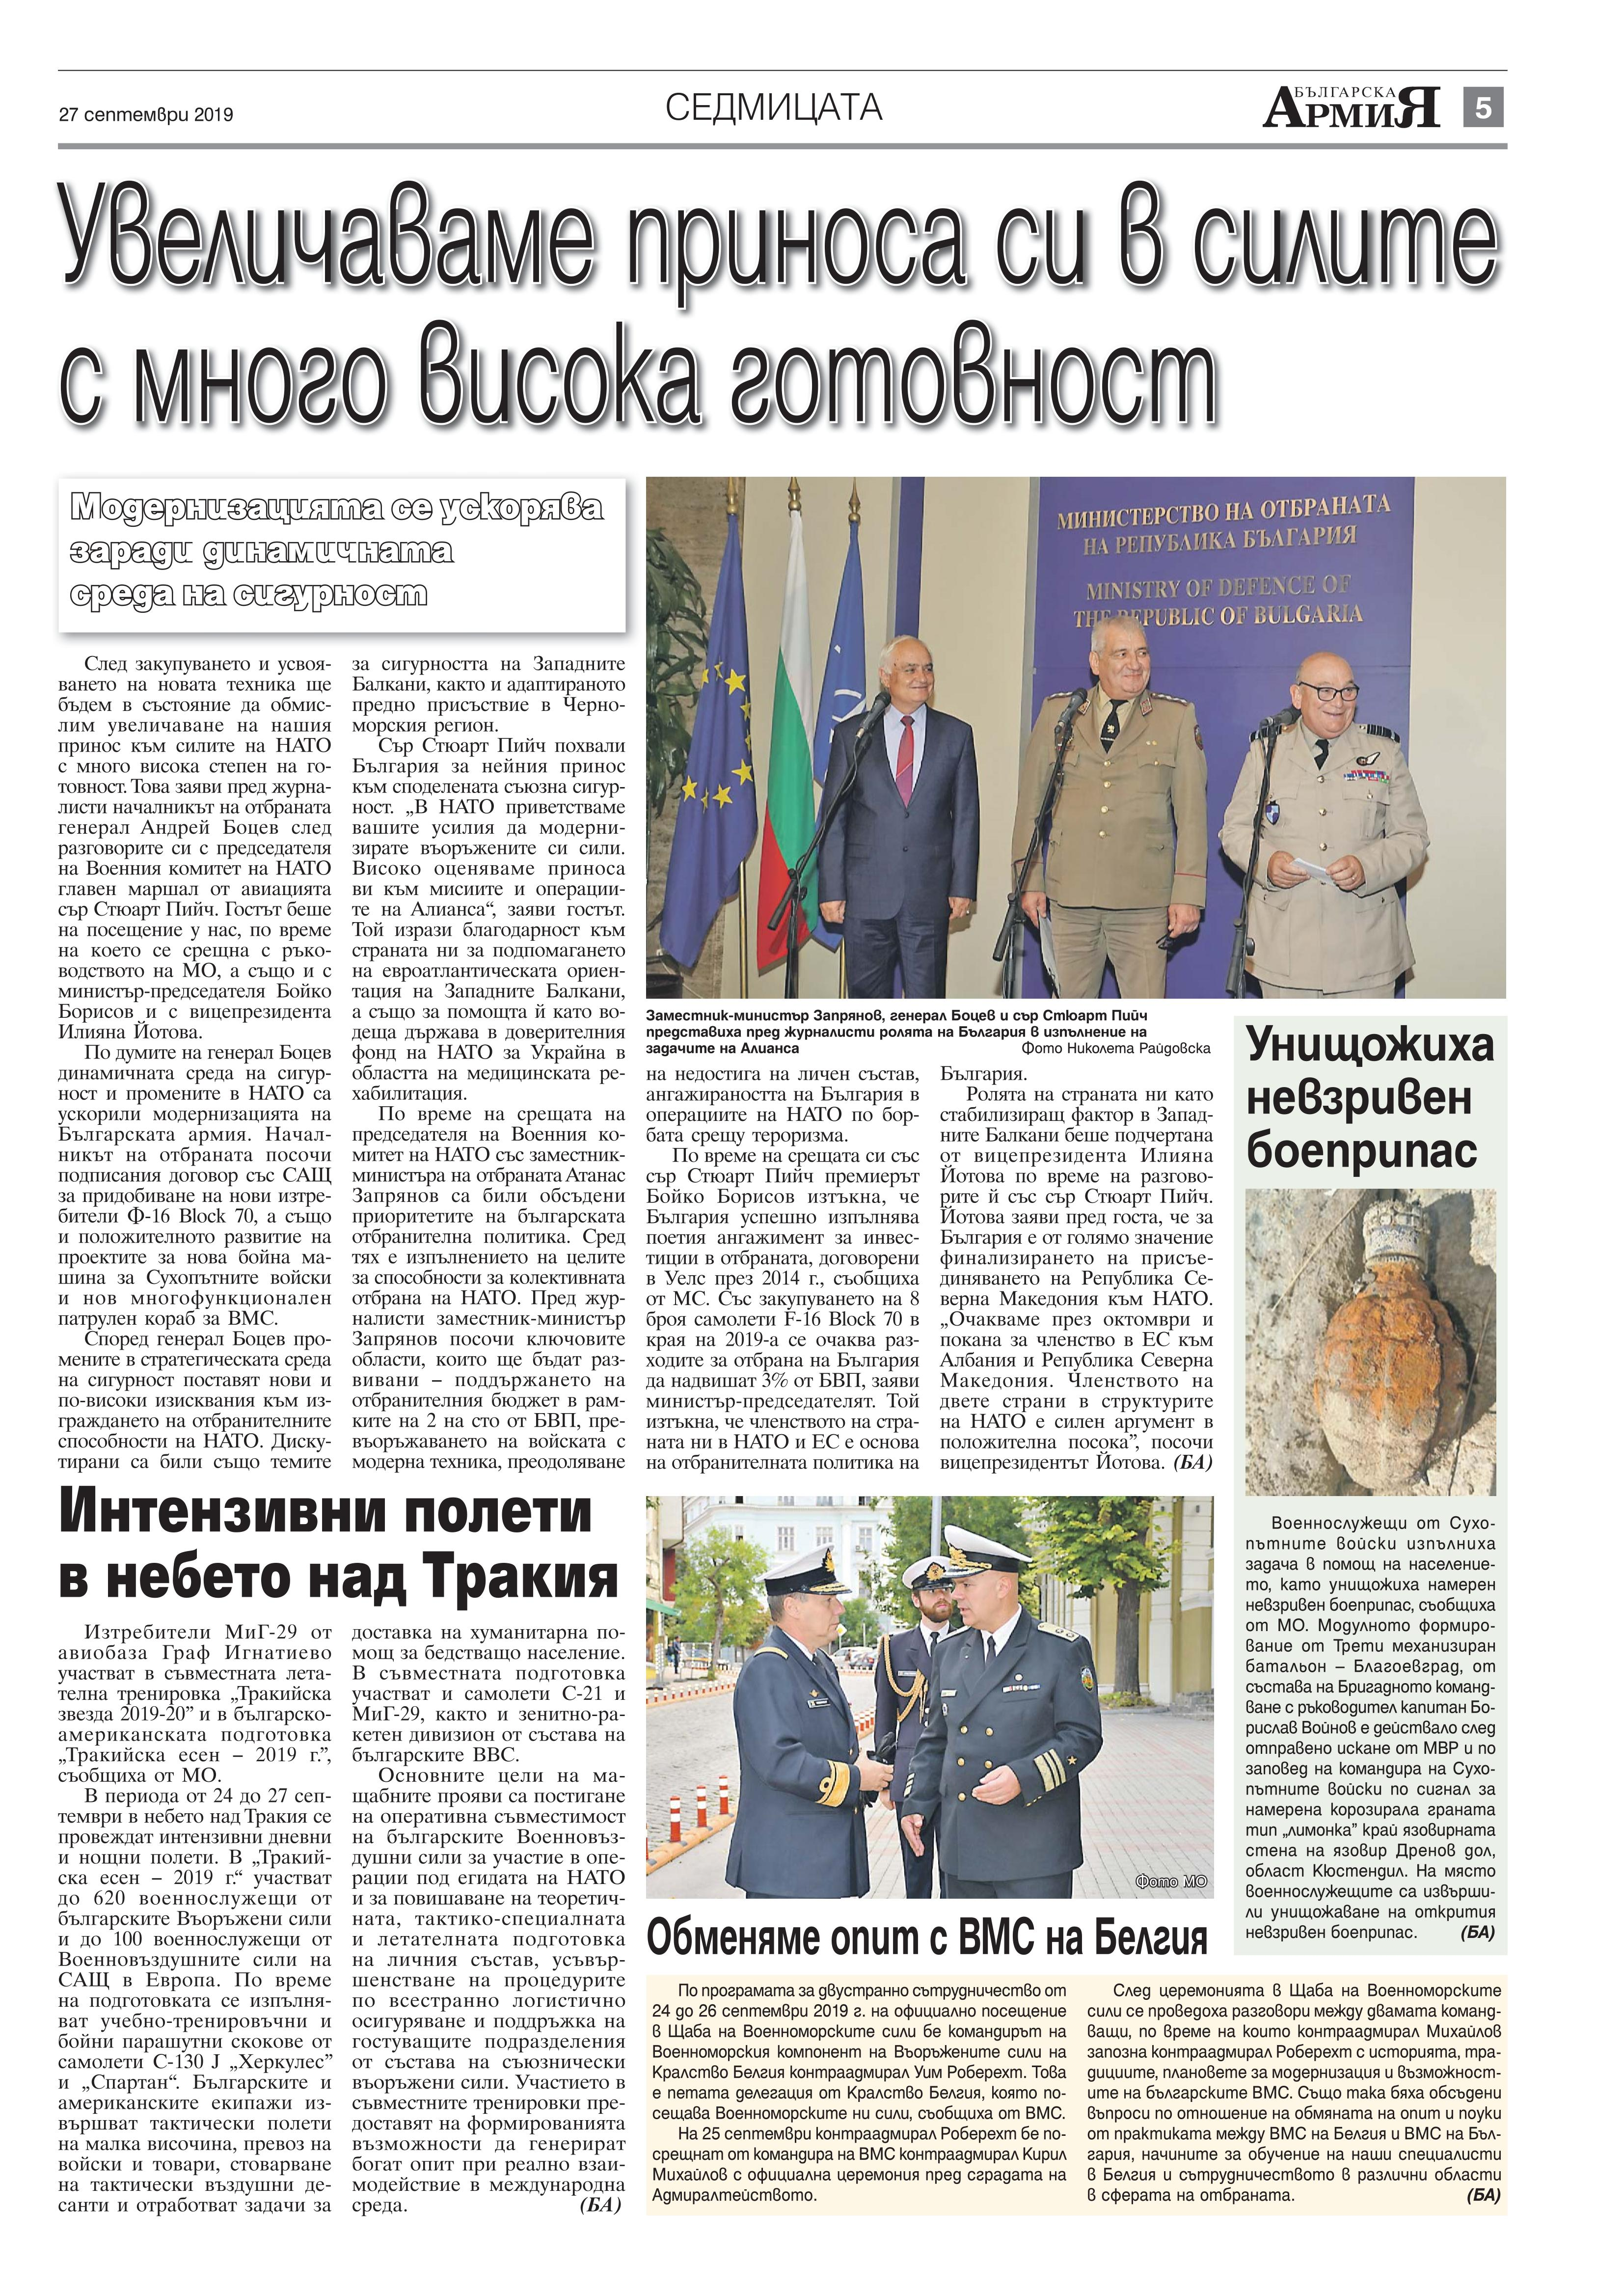 https://armymedia.bg/wp-content/uploads/2015/06/05.page1_-106.jpg